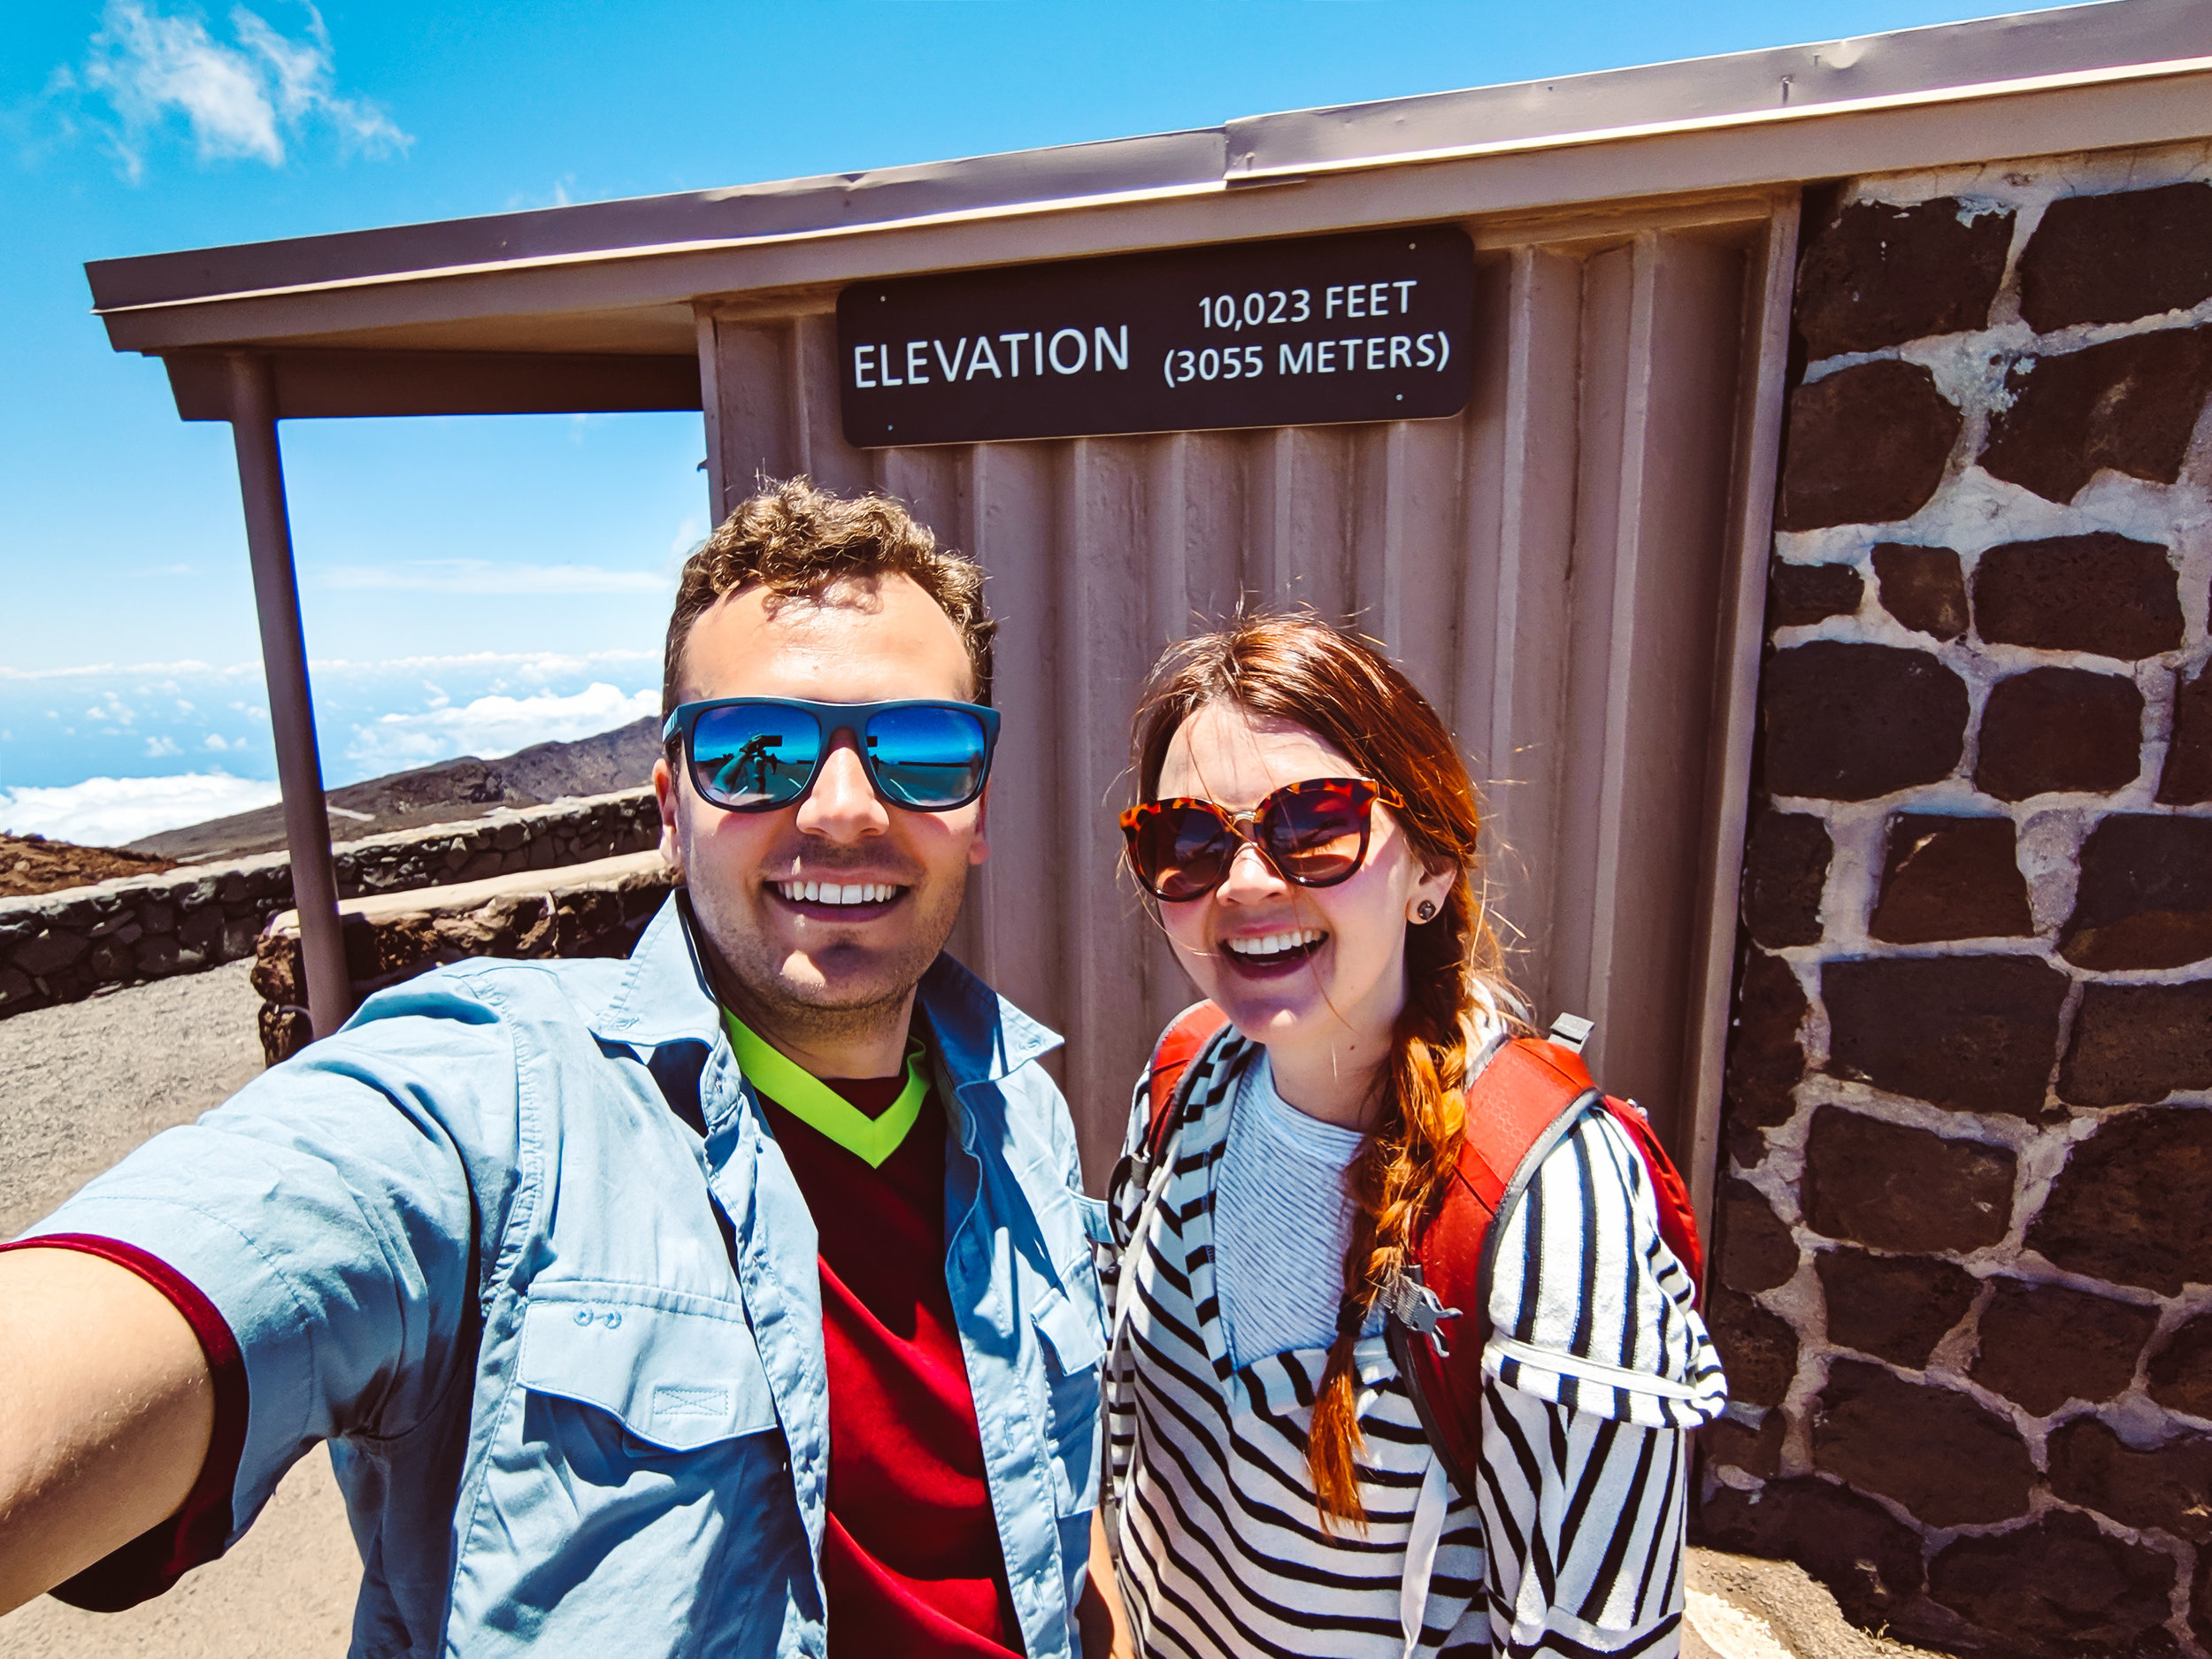 All of these photos are from our hike inside the Haleakala Crater in Maui. It was on this hike that I finally, finally decided on Explorer Month for the theme. :)